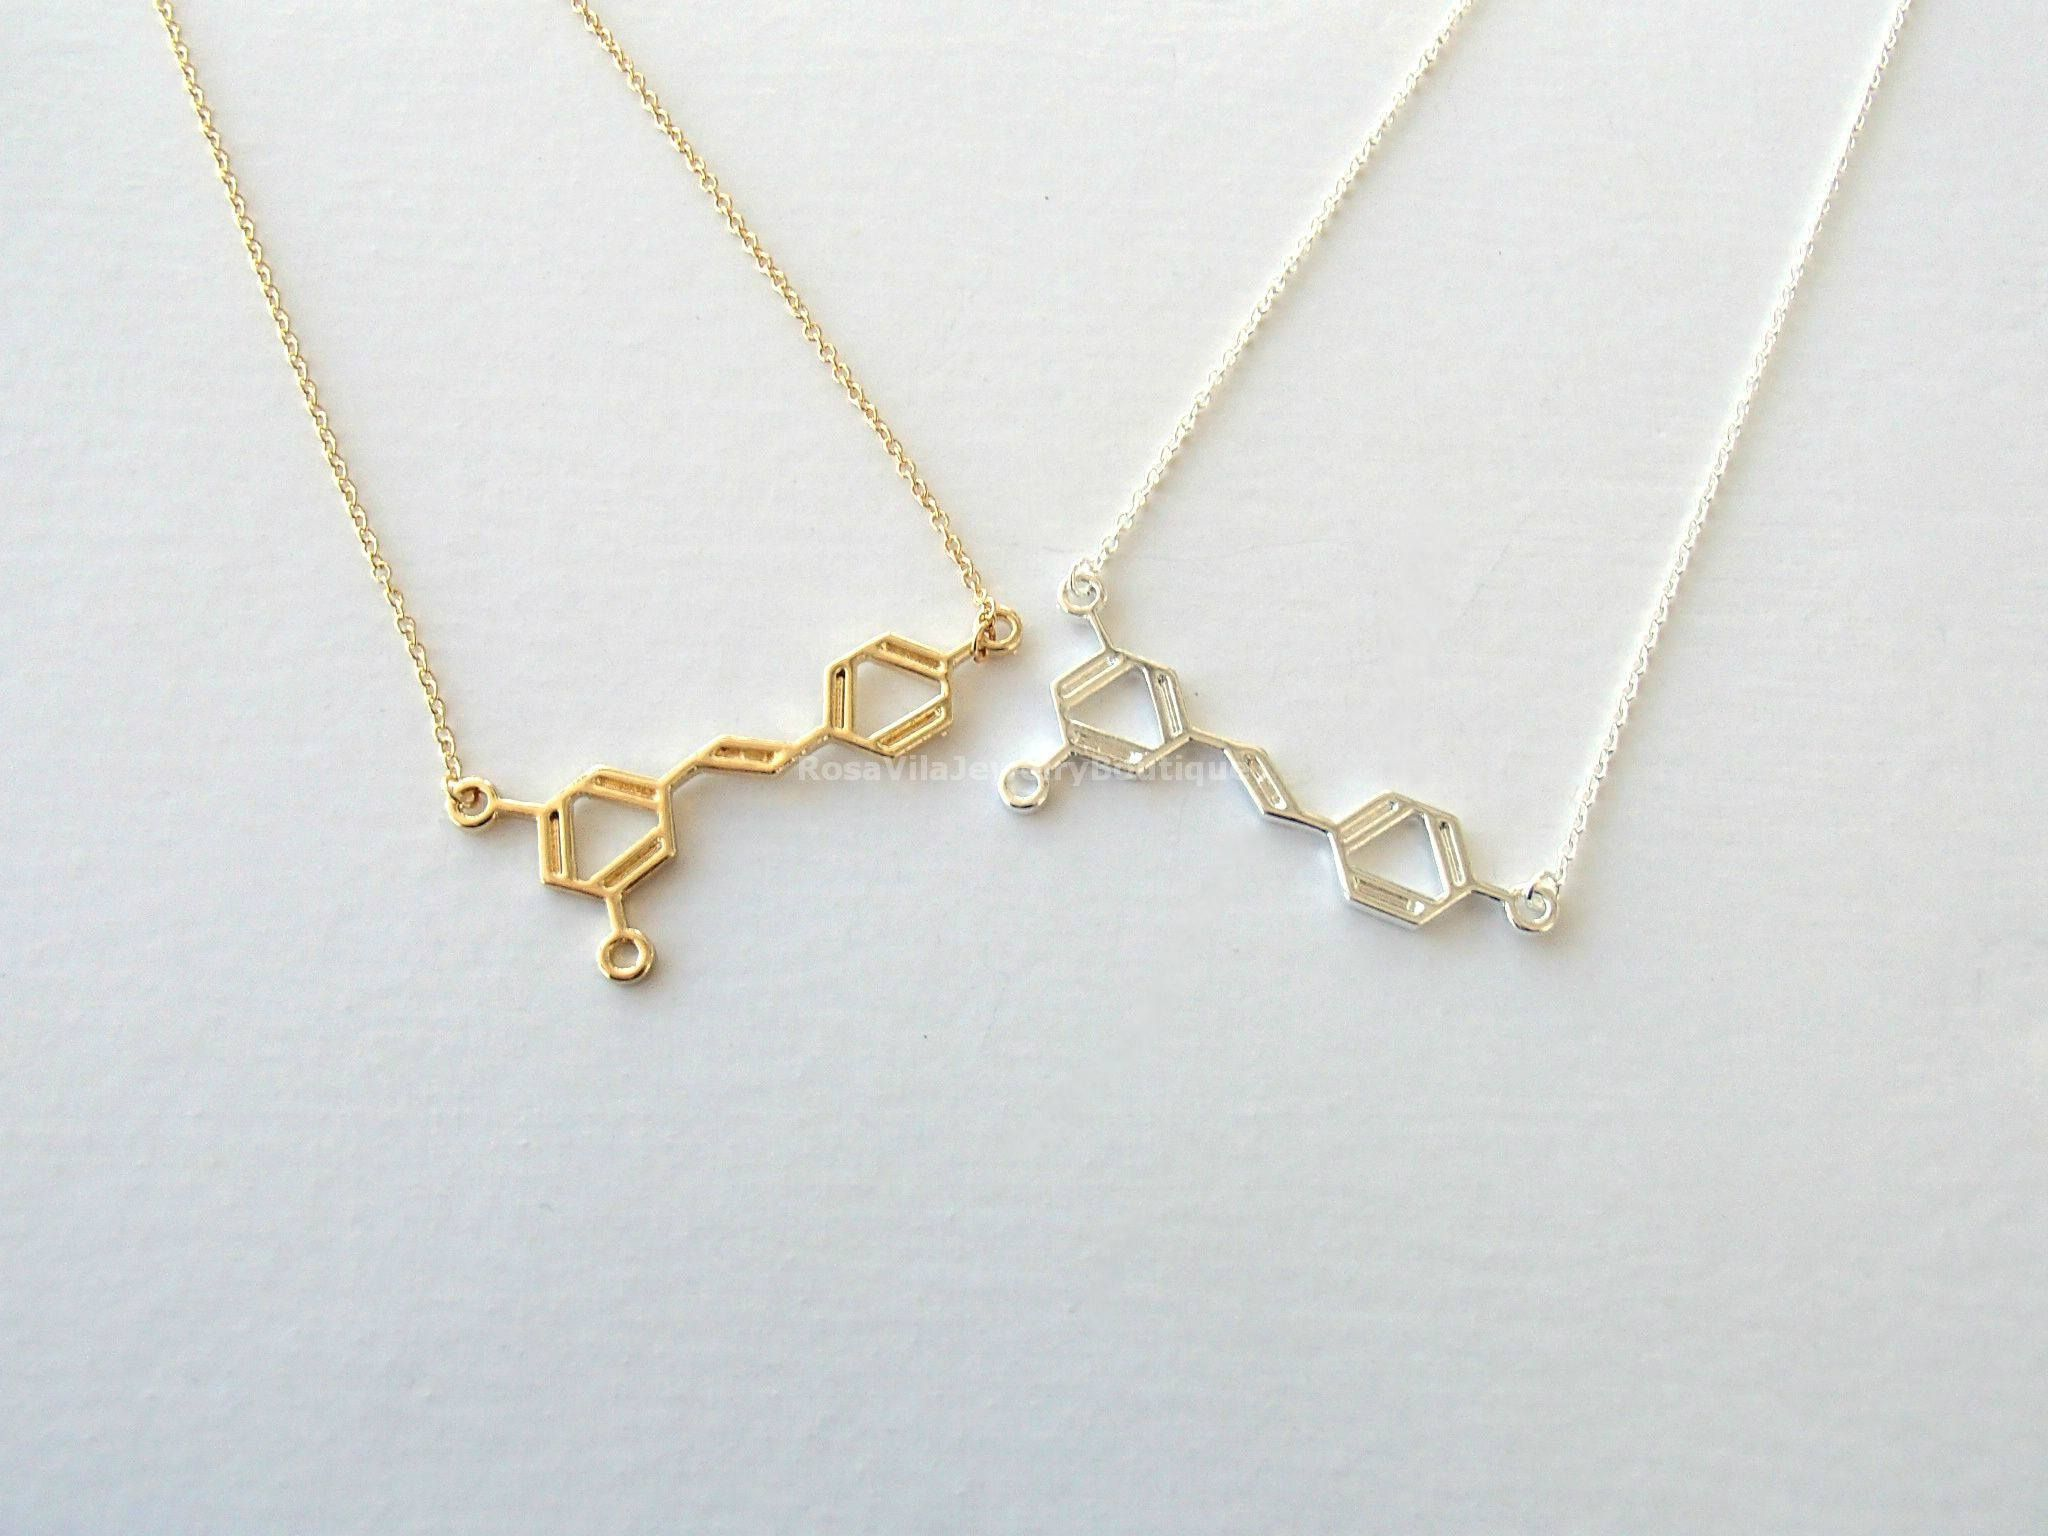 v jewelry necklace molecule itm pendant biology for dna s is loading science image women men